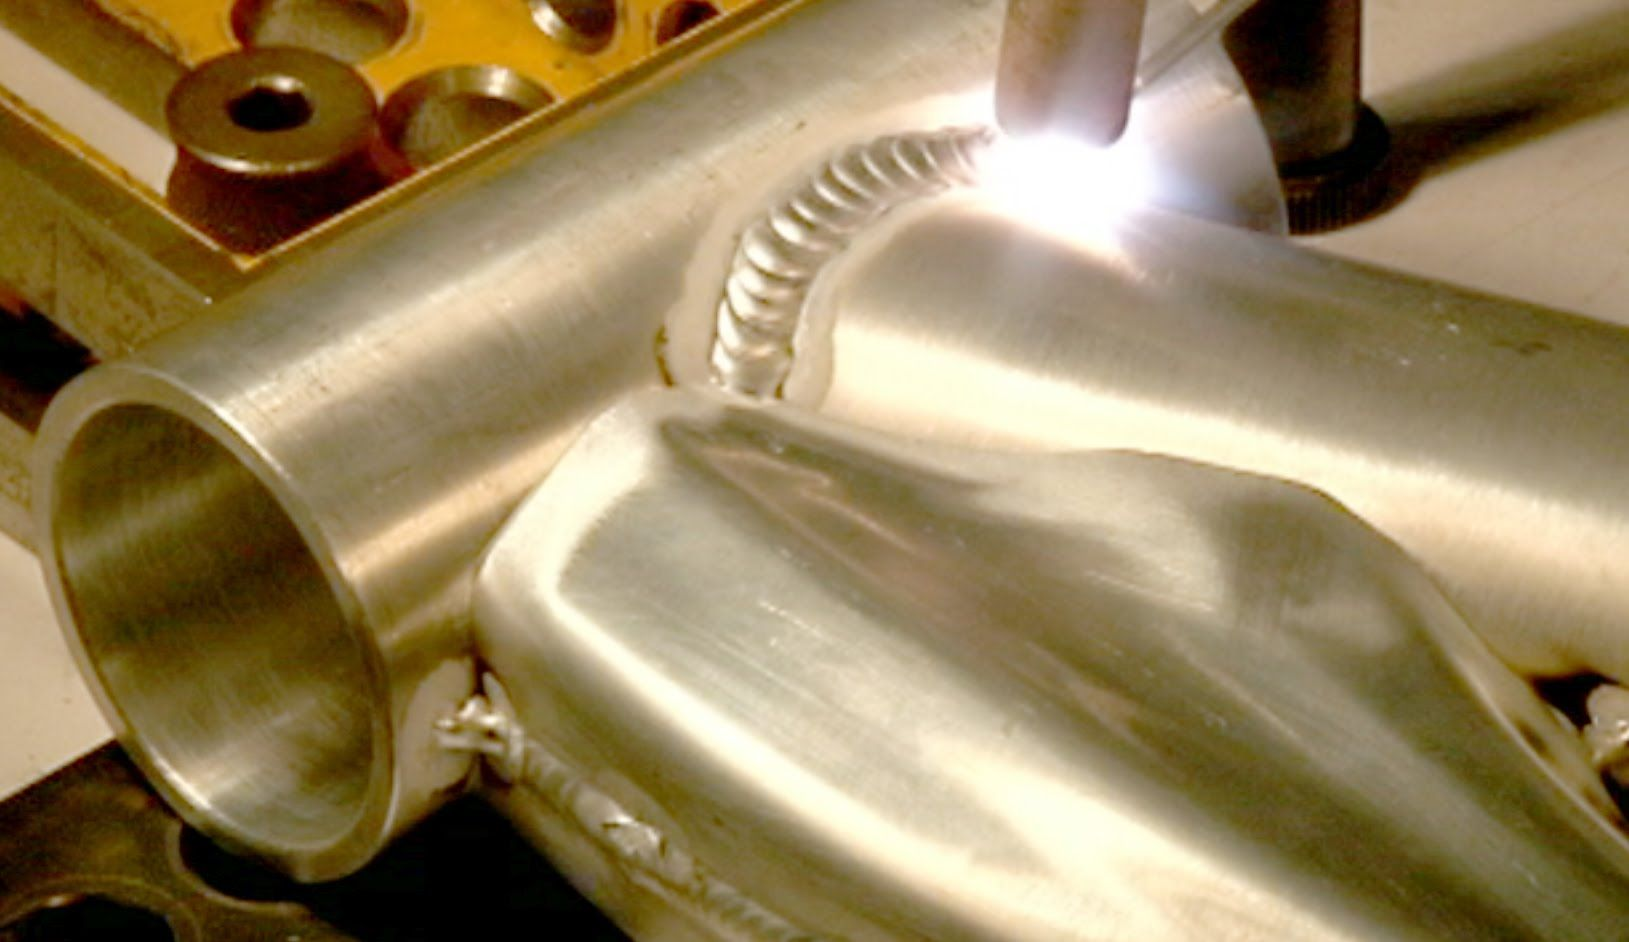 This video shows the details of how a highend aluminum